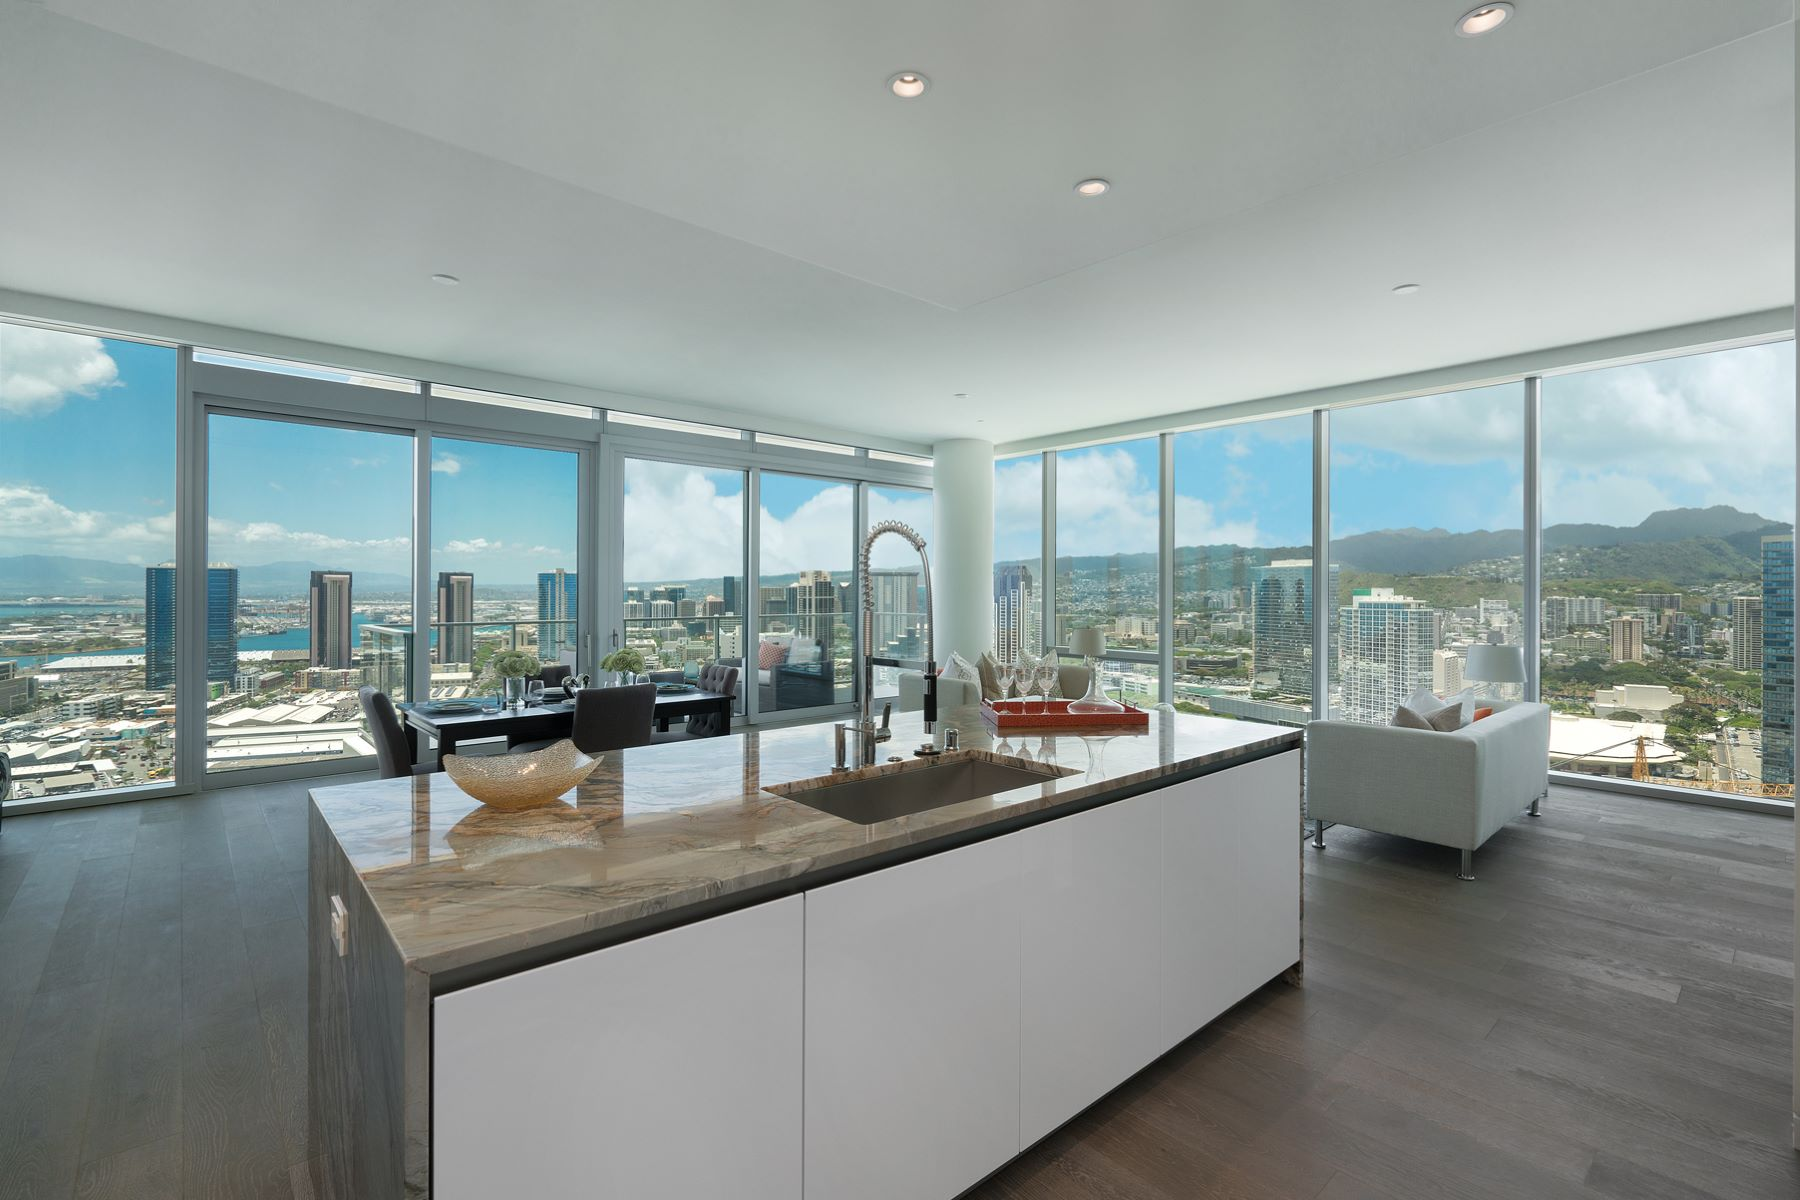 Additional photo for property listing at Stunning Waiea Penthouse 1118 Ala Moana Boulevard #PH 3203 Honolulu, Hawaii 96814 Vereinigte Staaten